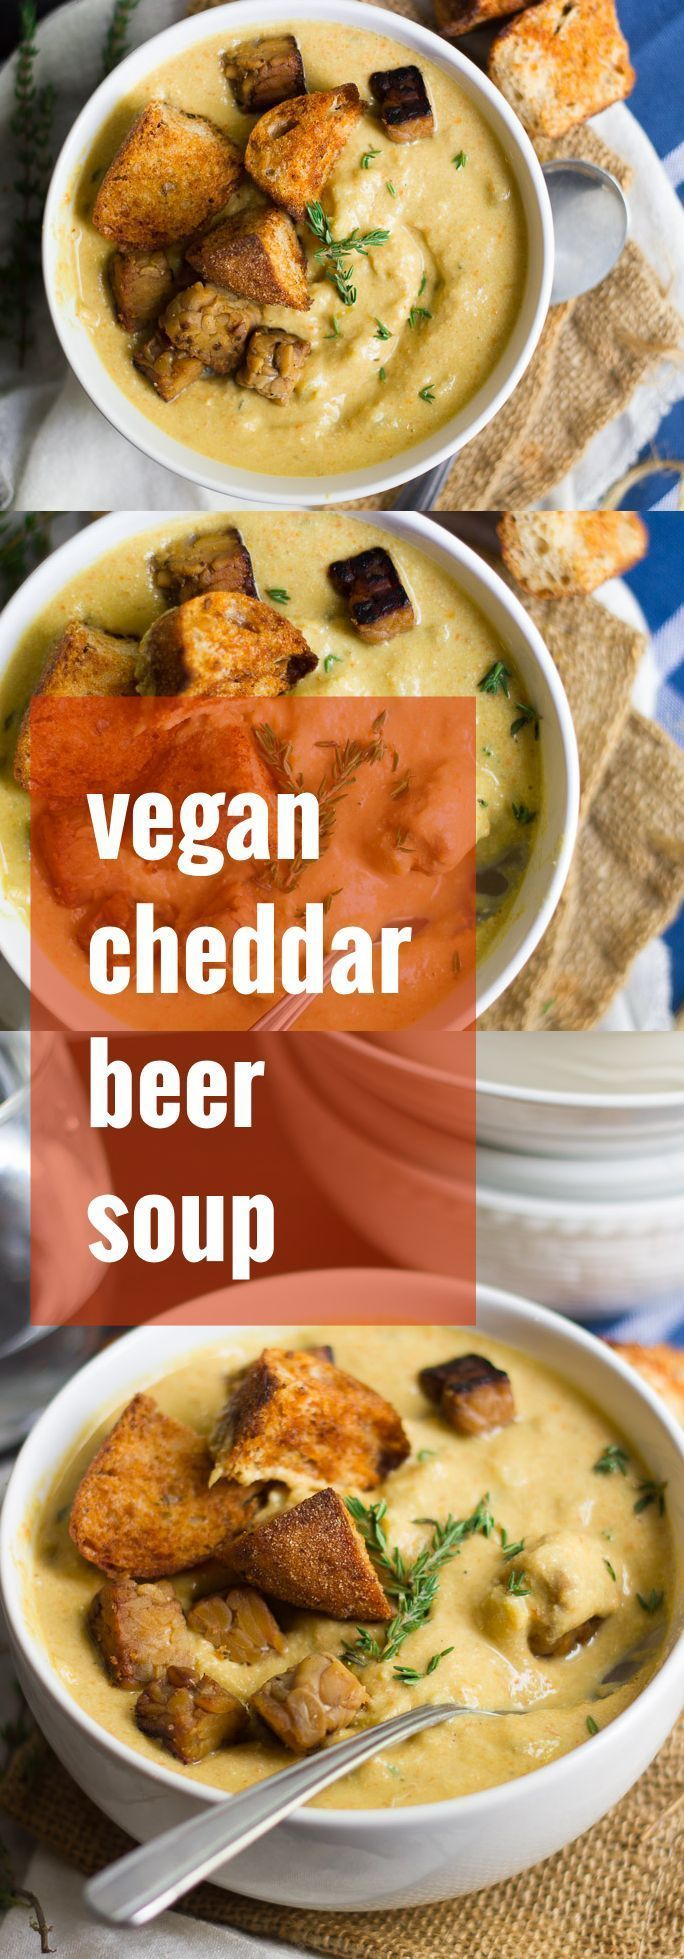 This rich and creamy vegan cheddar beer soup is made with a base of savory veggies and creamy raw cashews, simmered up with ale and topped off with smoky croutons and tempeh bacon!